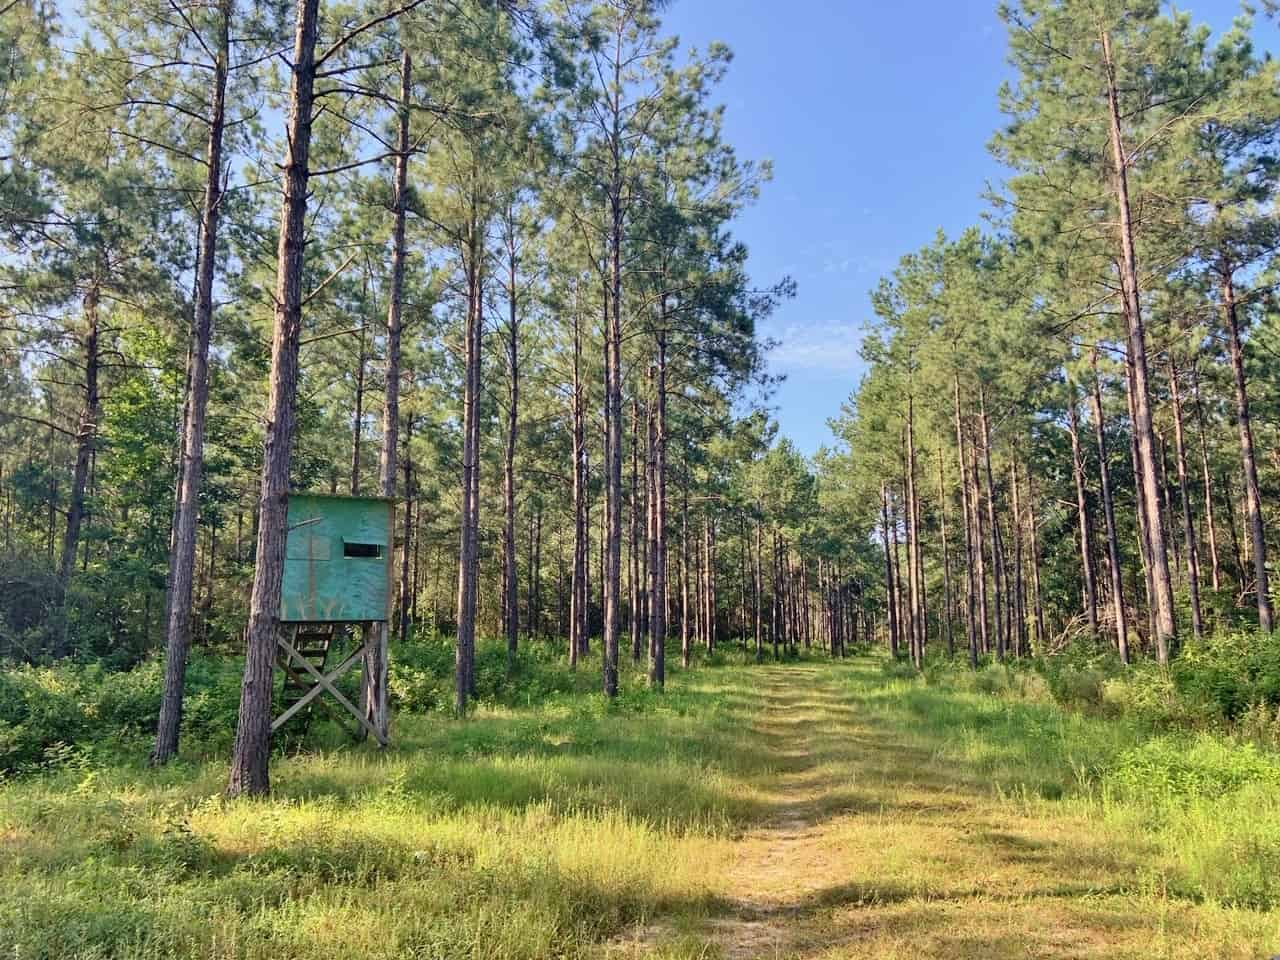 188 Acres Hunting Timber Land for Sale Pearl River Co, MS